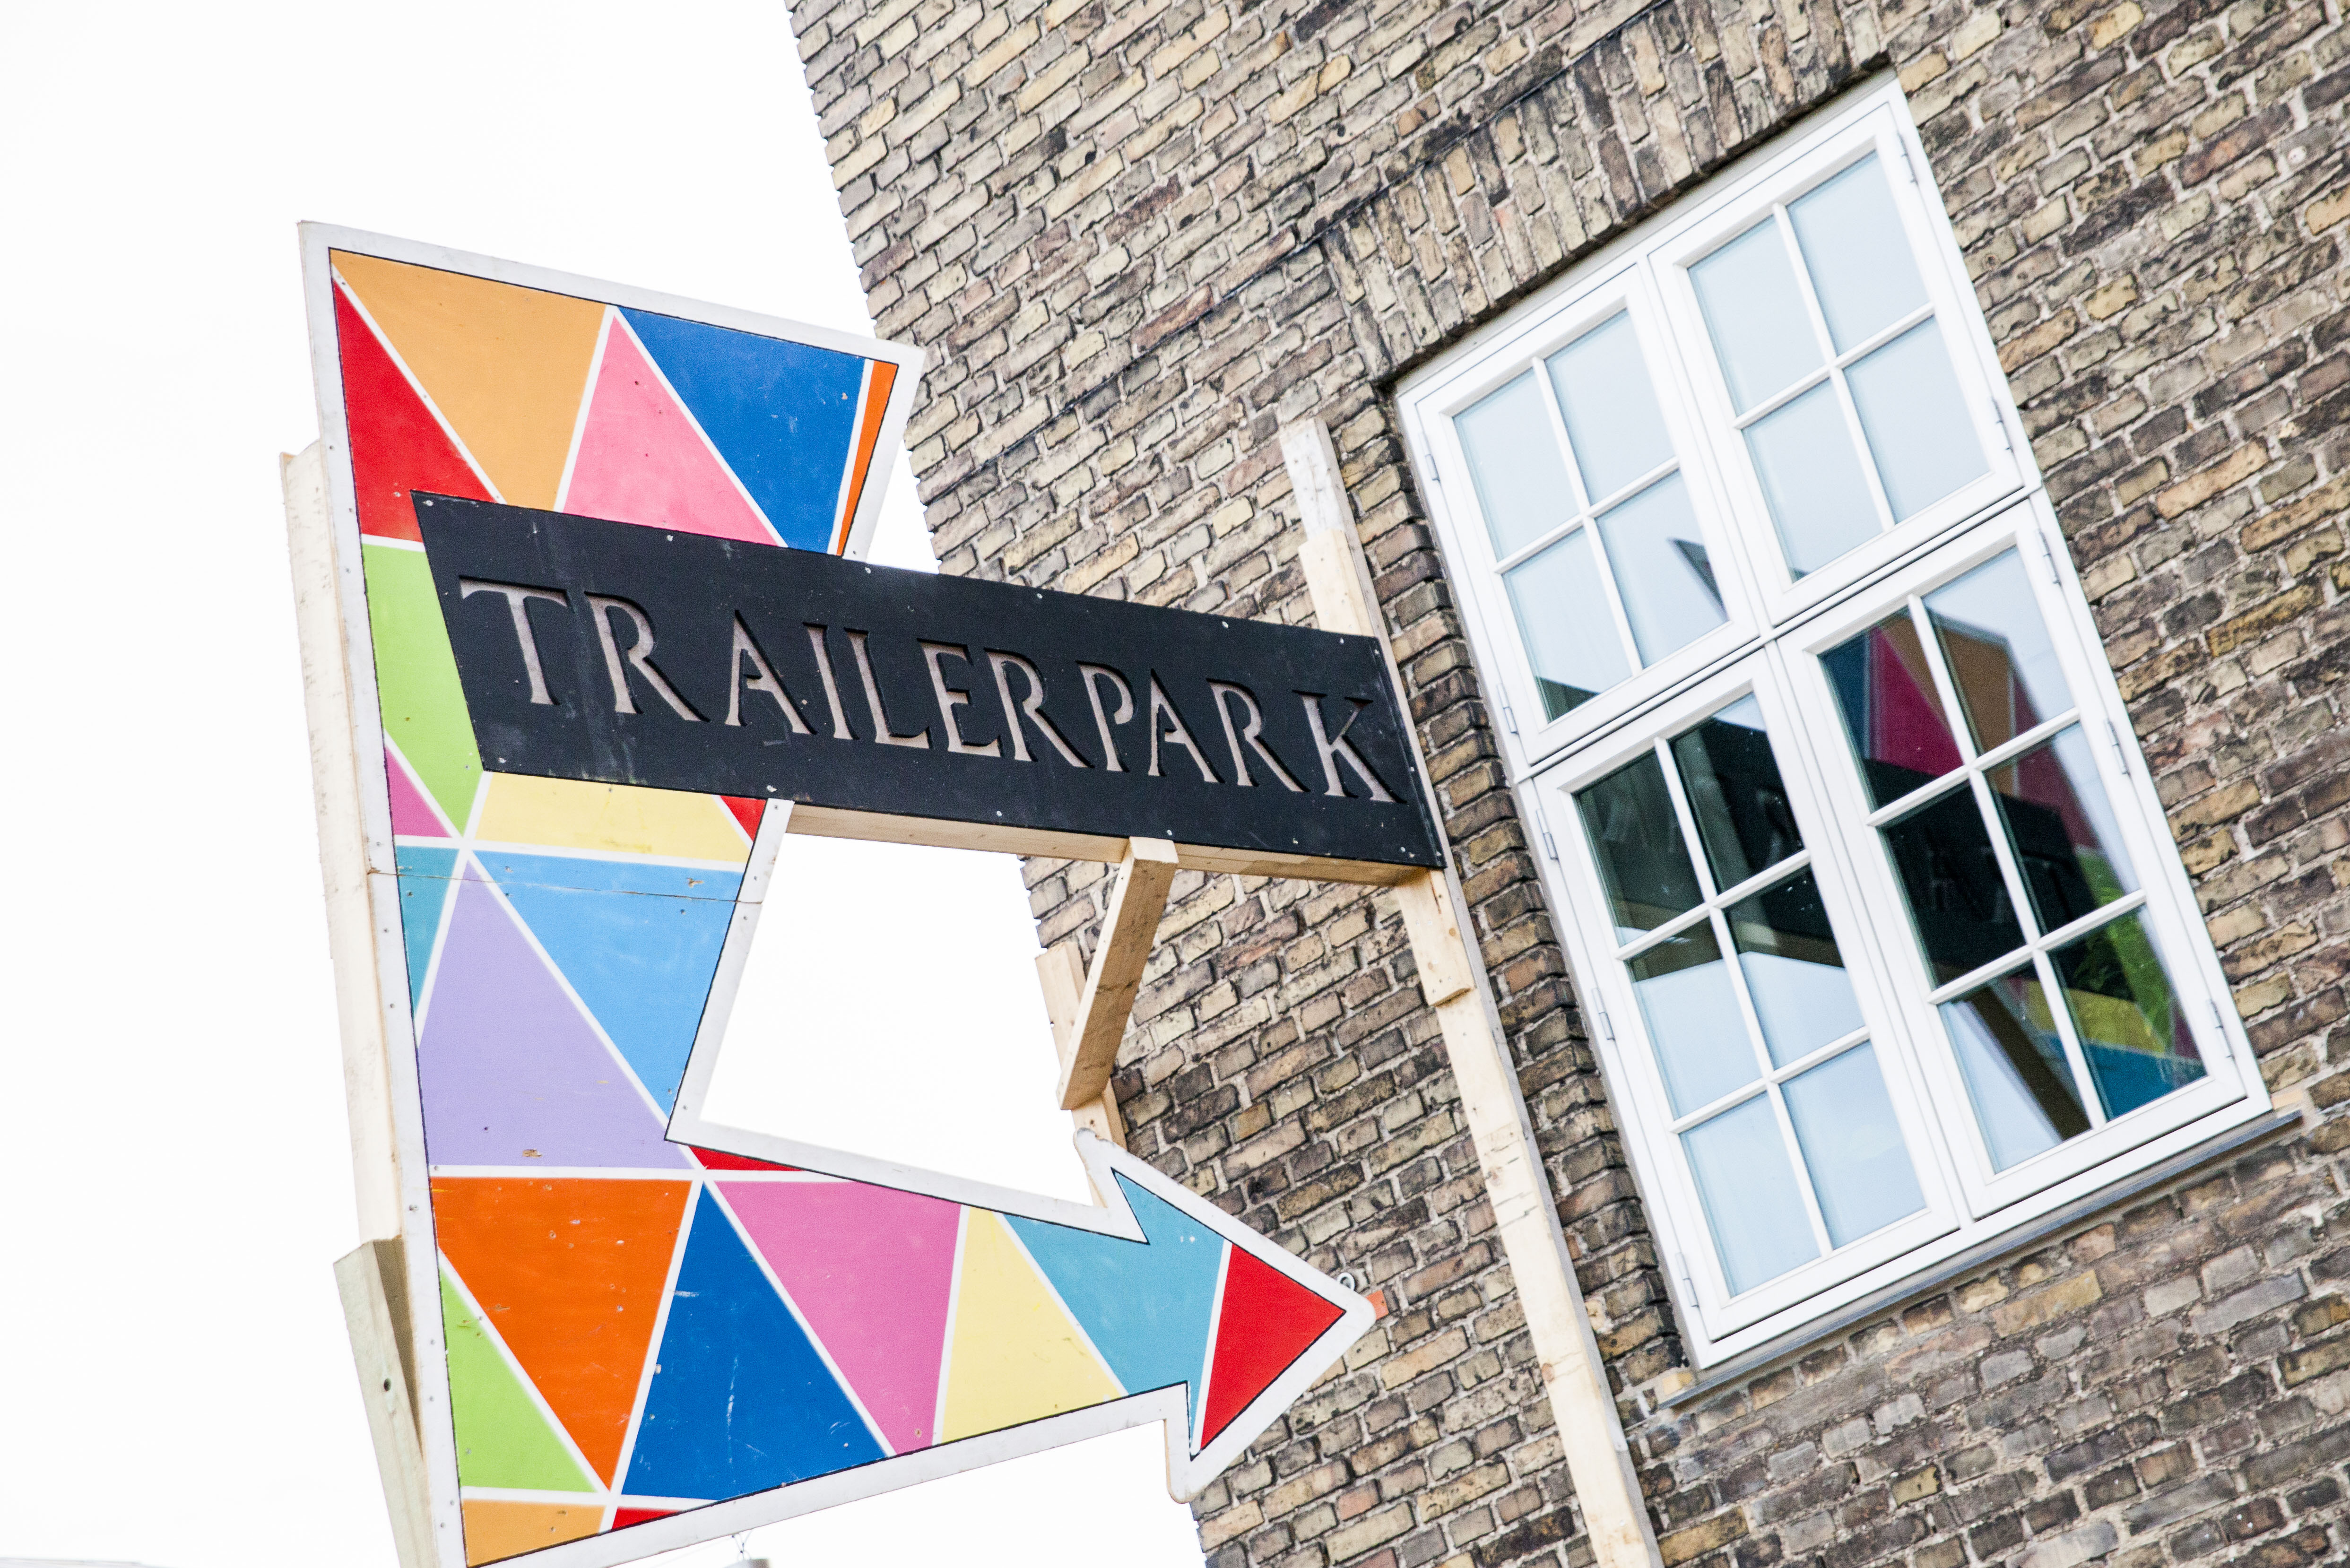 TrailerparkFestival_2015_vibe_HelenaLundquist_51